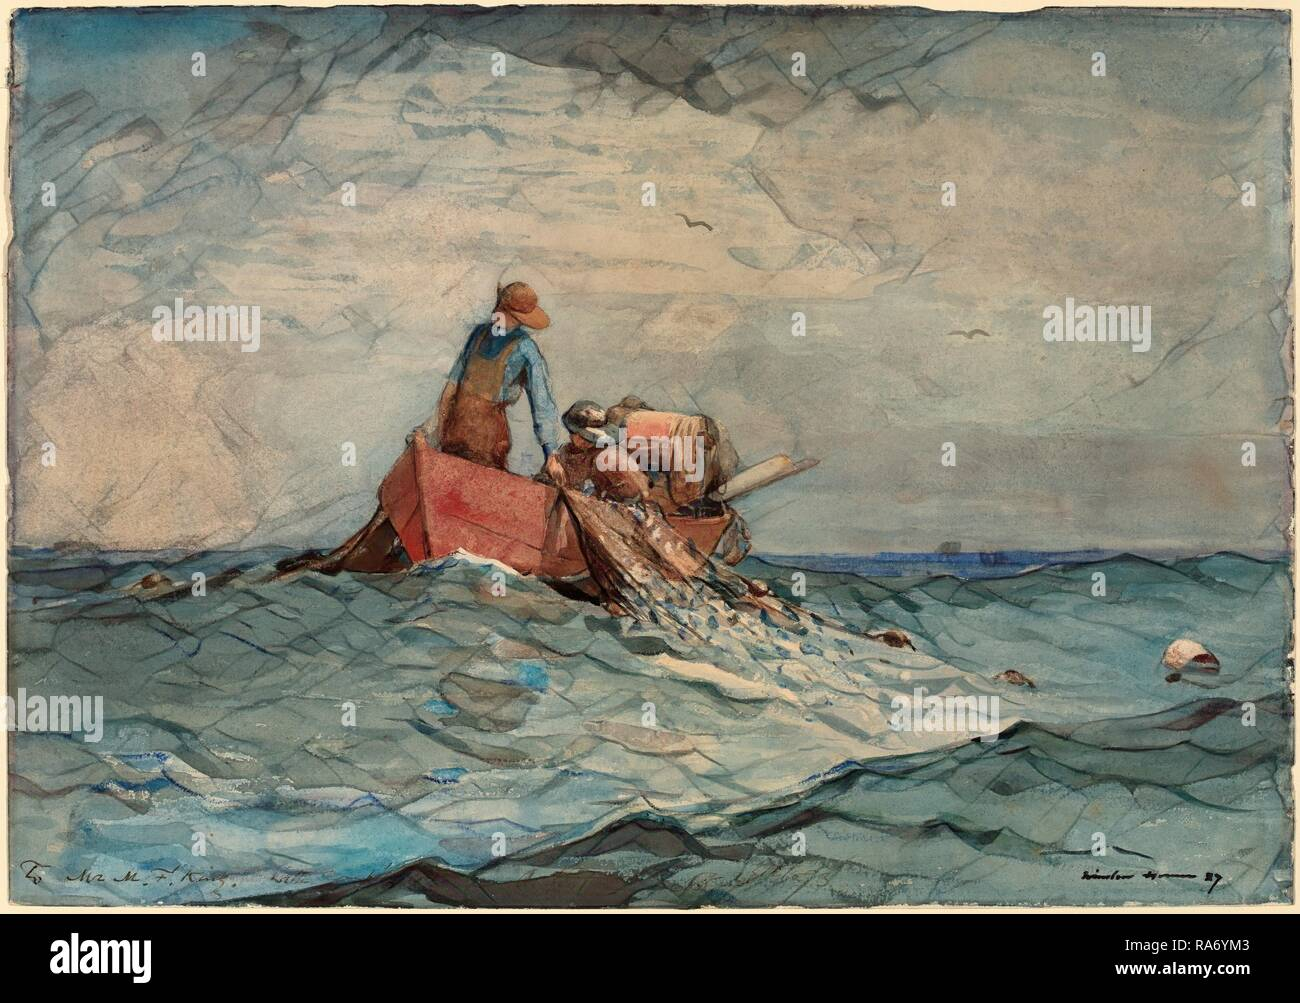 Winslow Homer, Hauling in the Nets, American, 1836 - 1910, 1887, watercolor over graphite. Reimagined - Stock Image